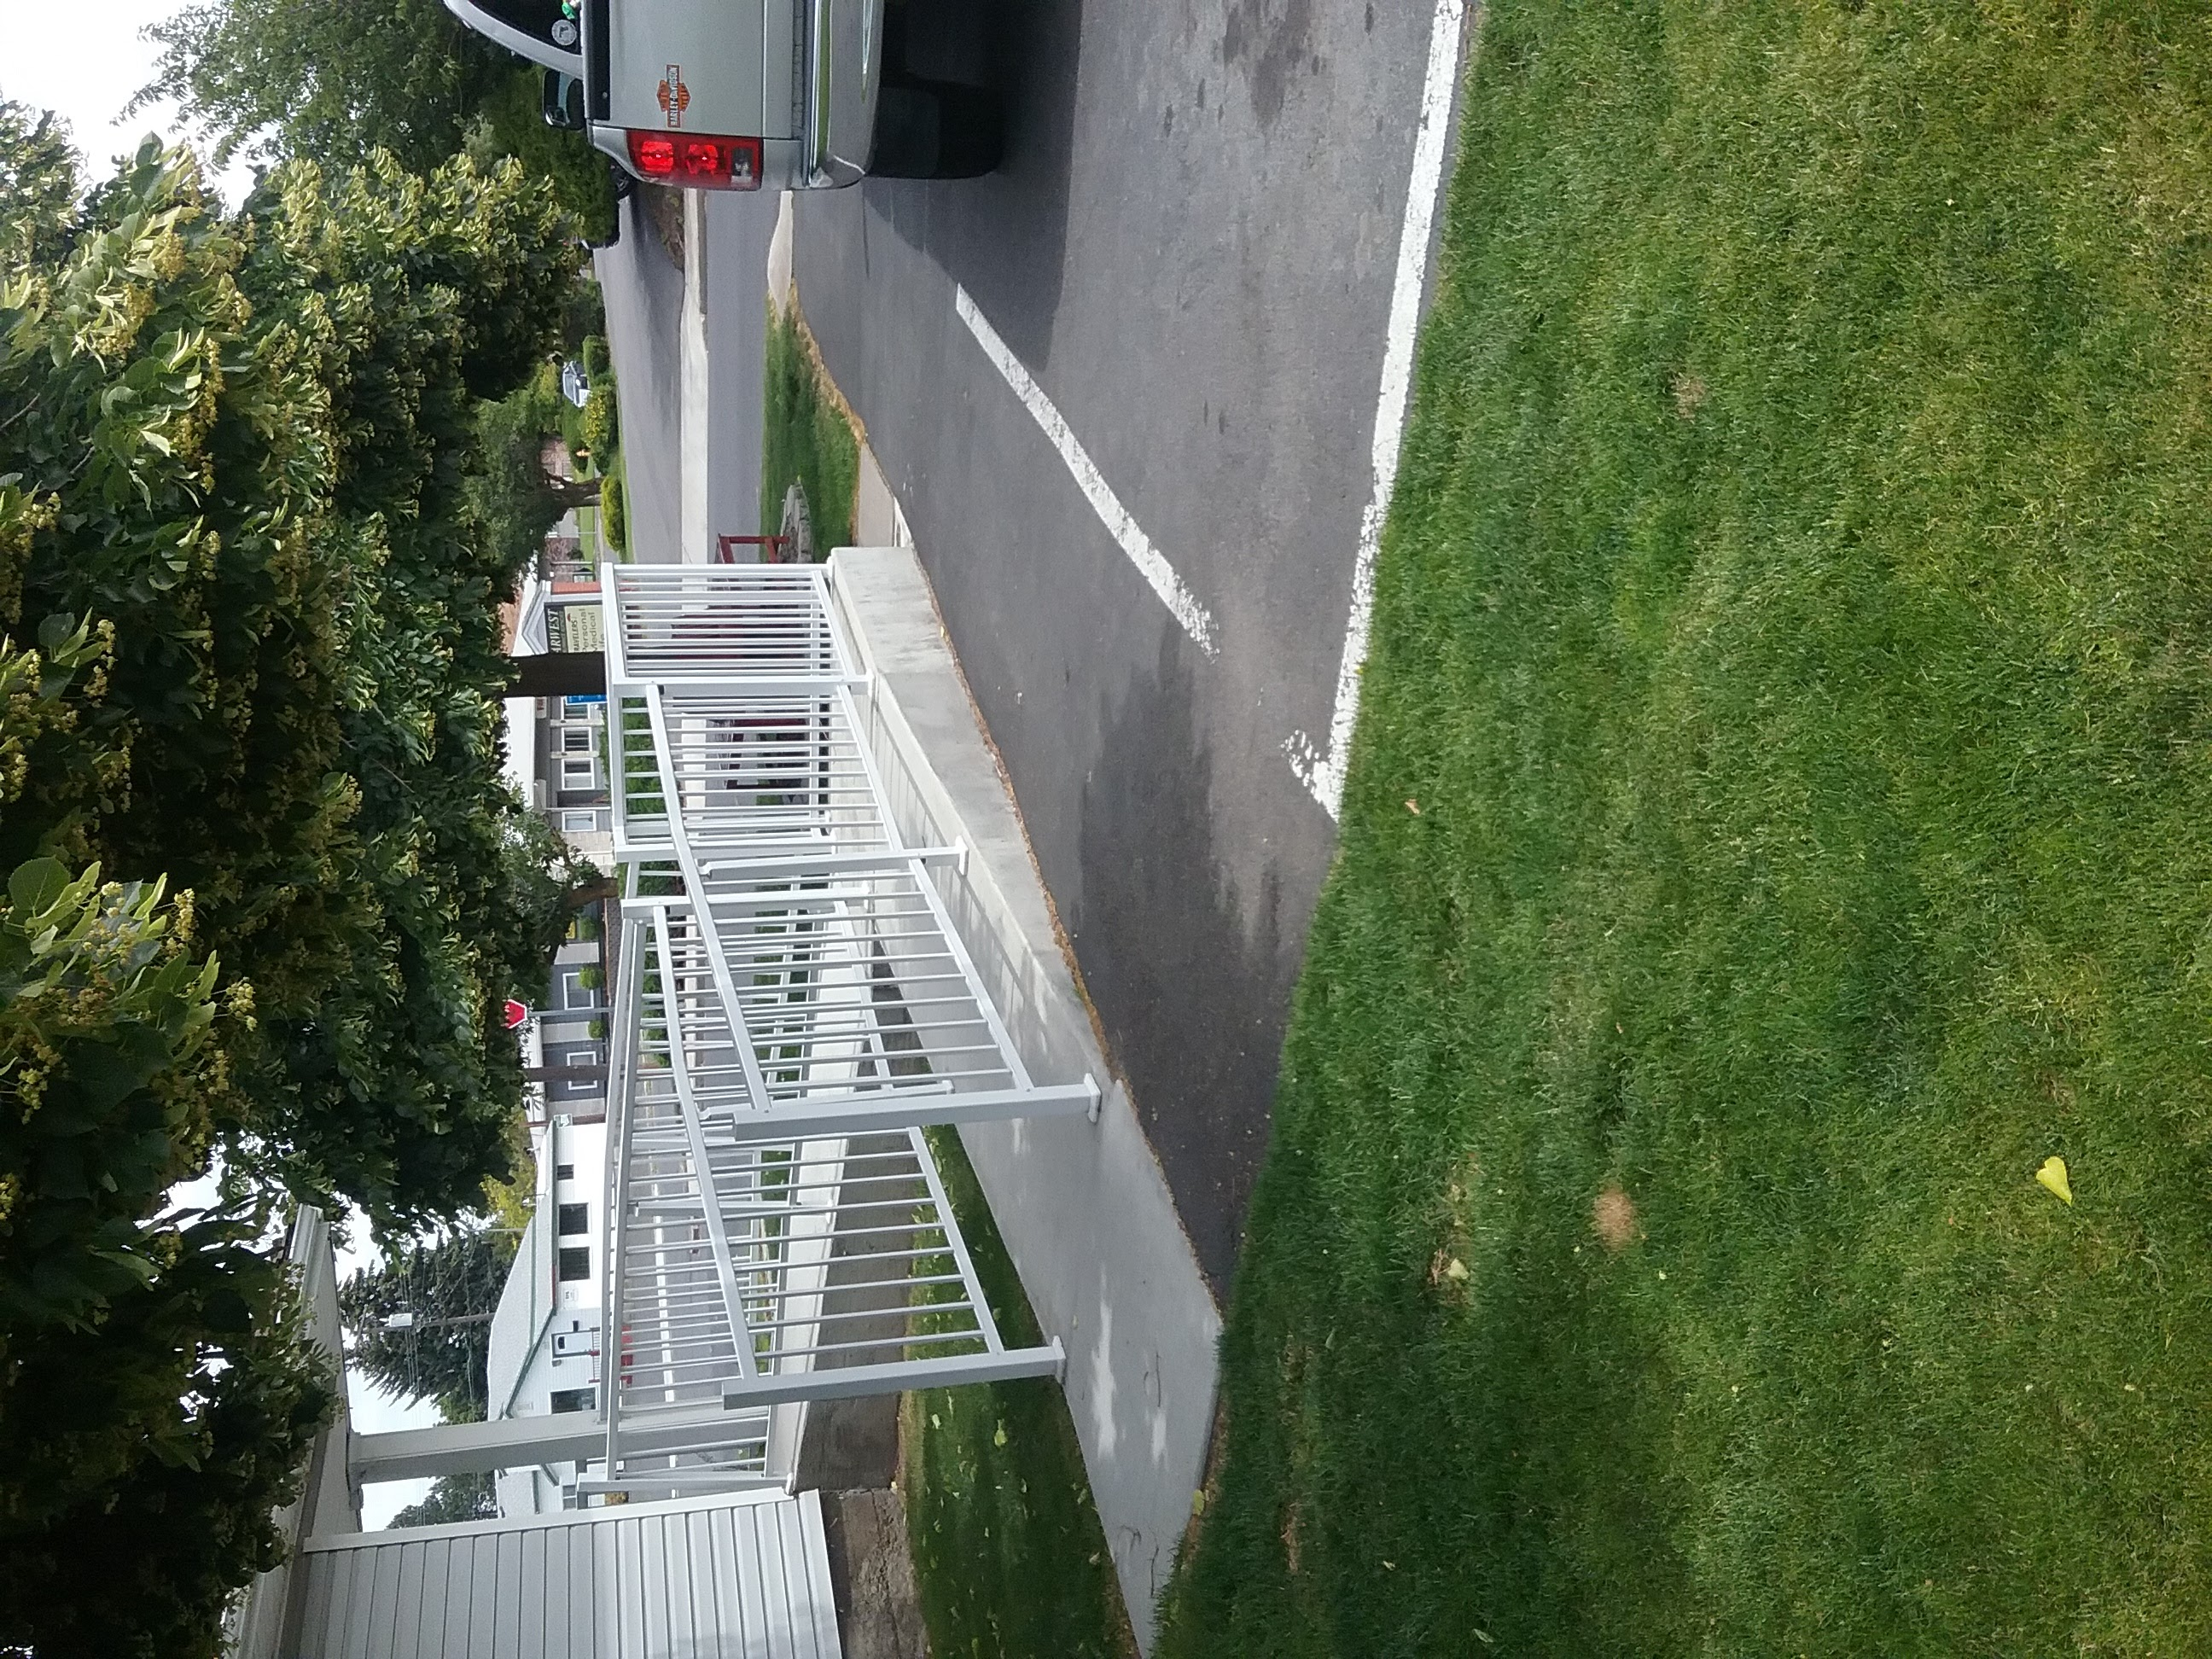 New ramp constructed on south side of building from parking lot to front door on east side of building